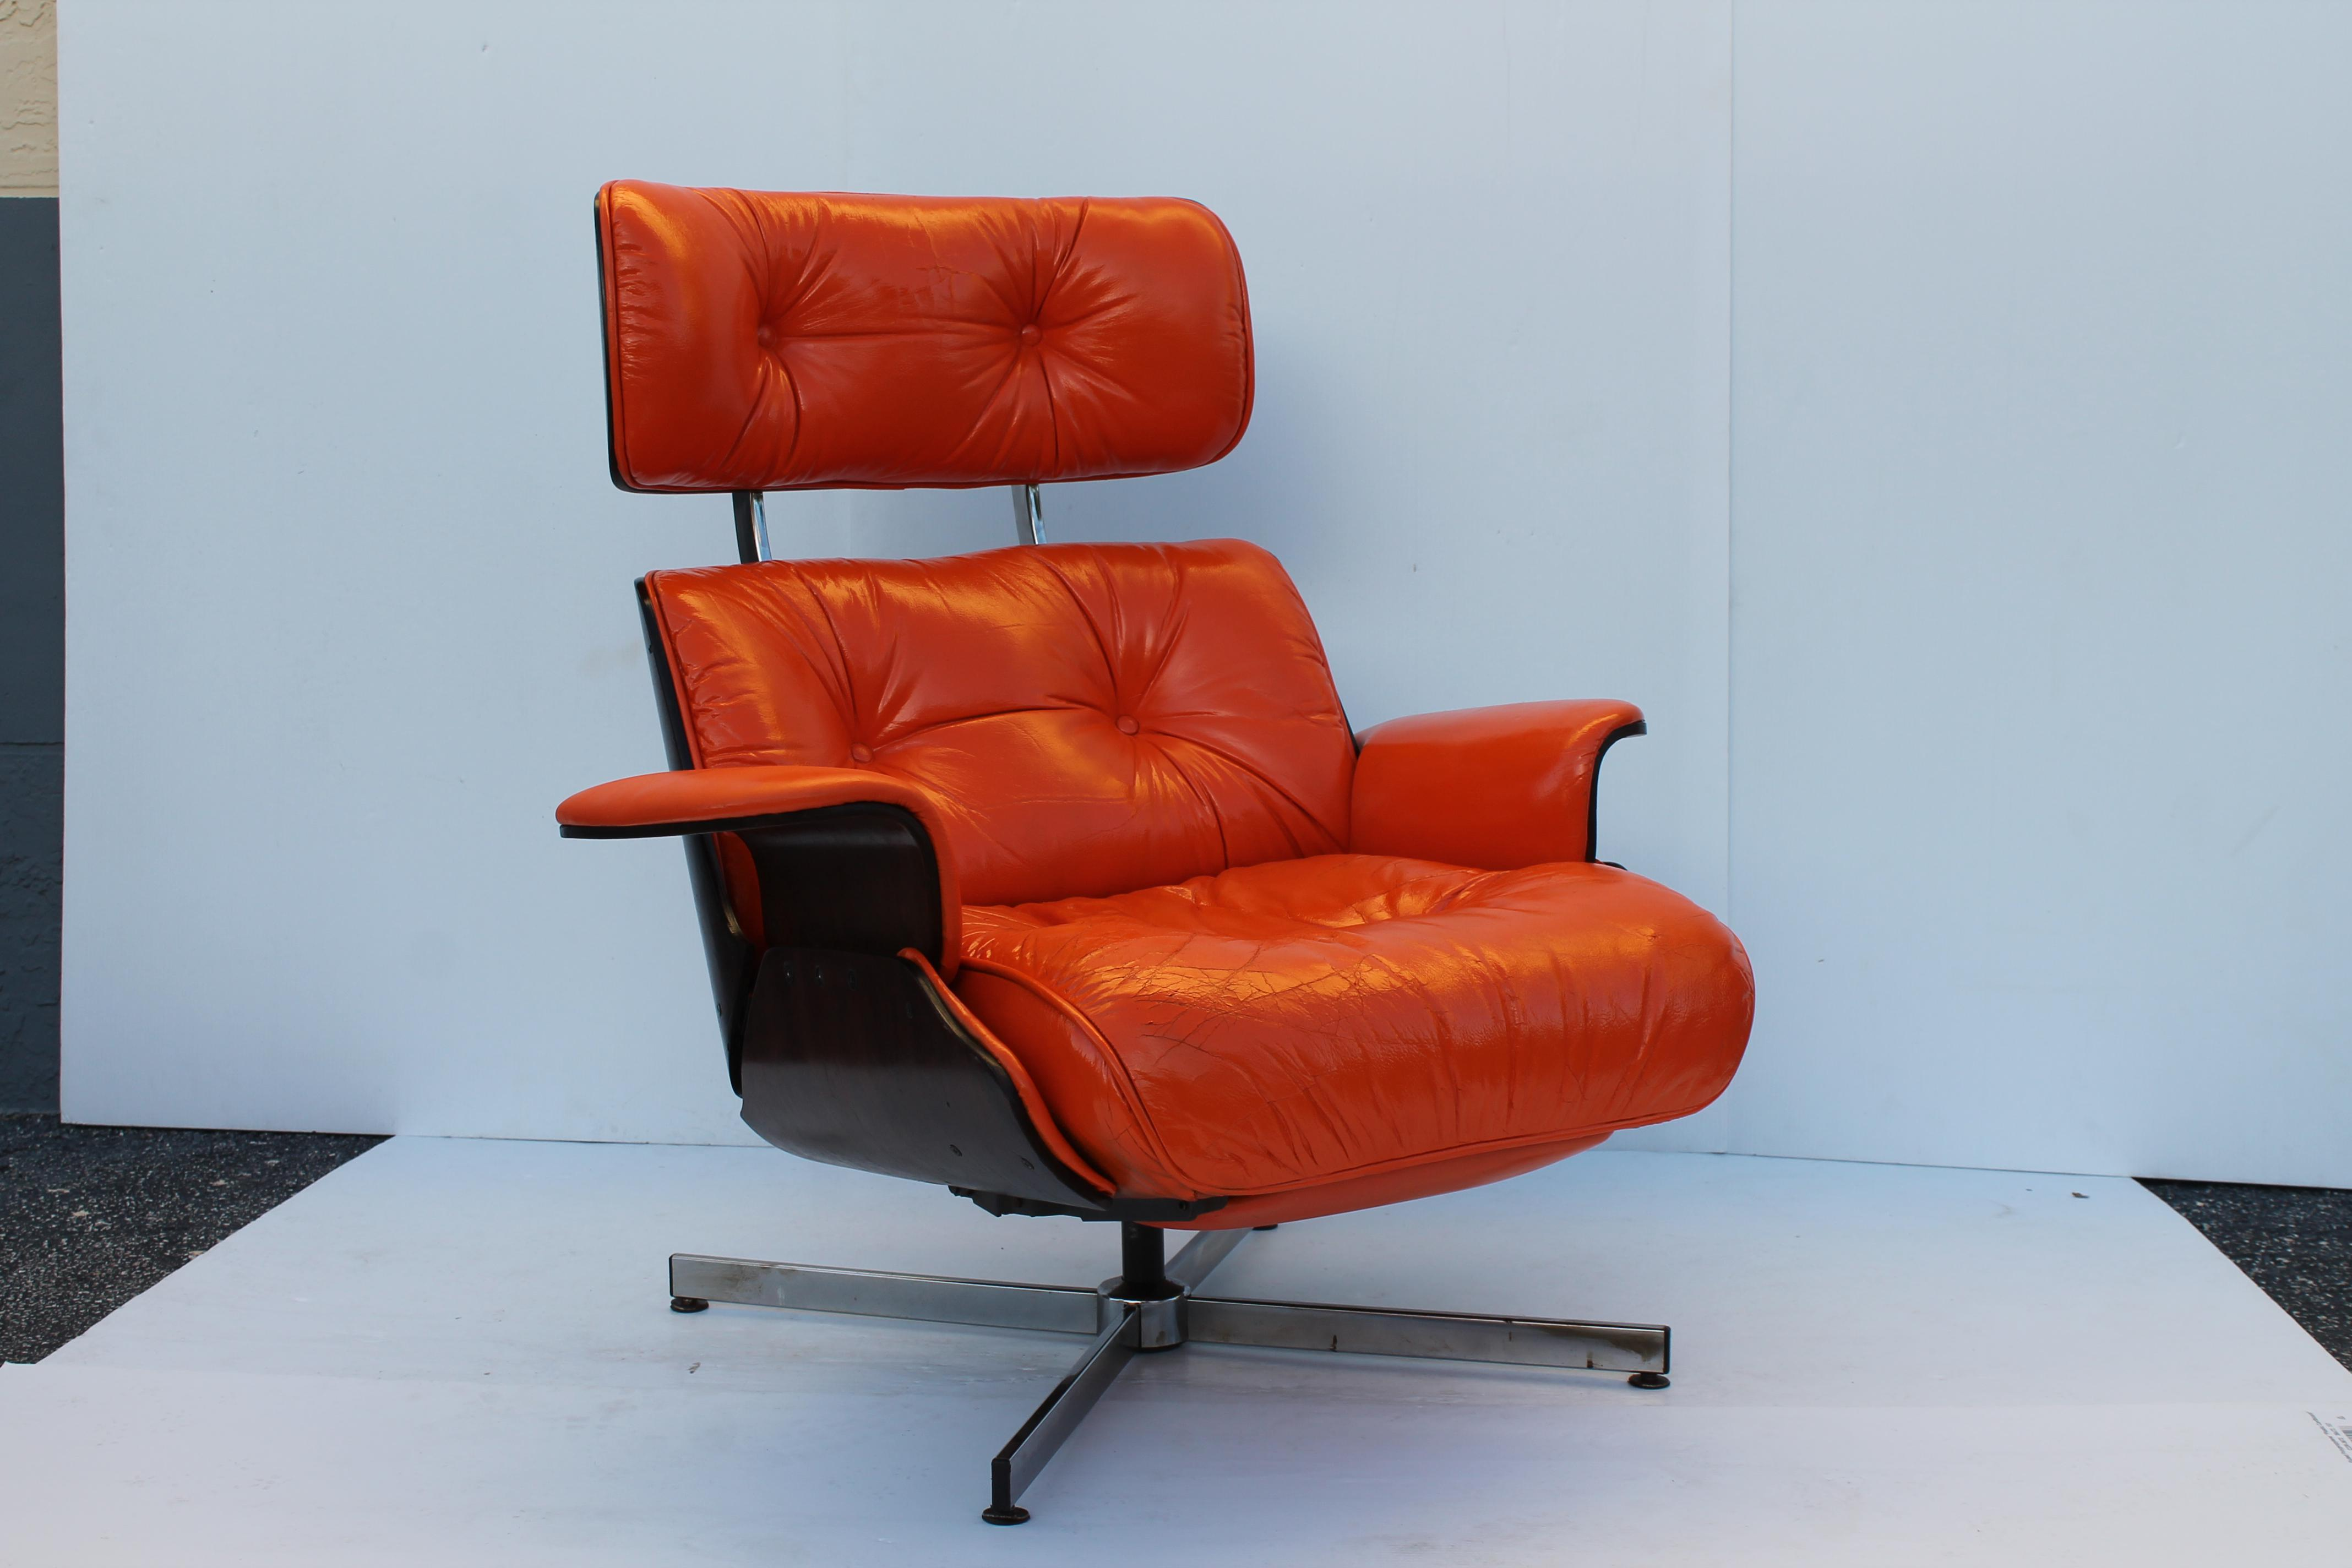 Rare Mid Century Modern Eames Style Recliner  Hermes  Orange Leather Lounge Chair - Image  sc 1 st  Chairish & Rare Mid Century Modern Eames Style Recliner